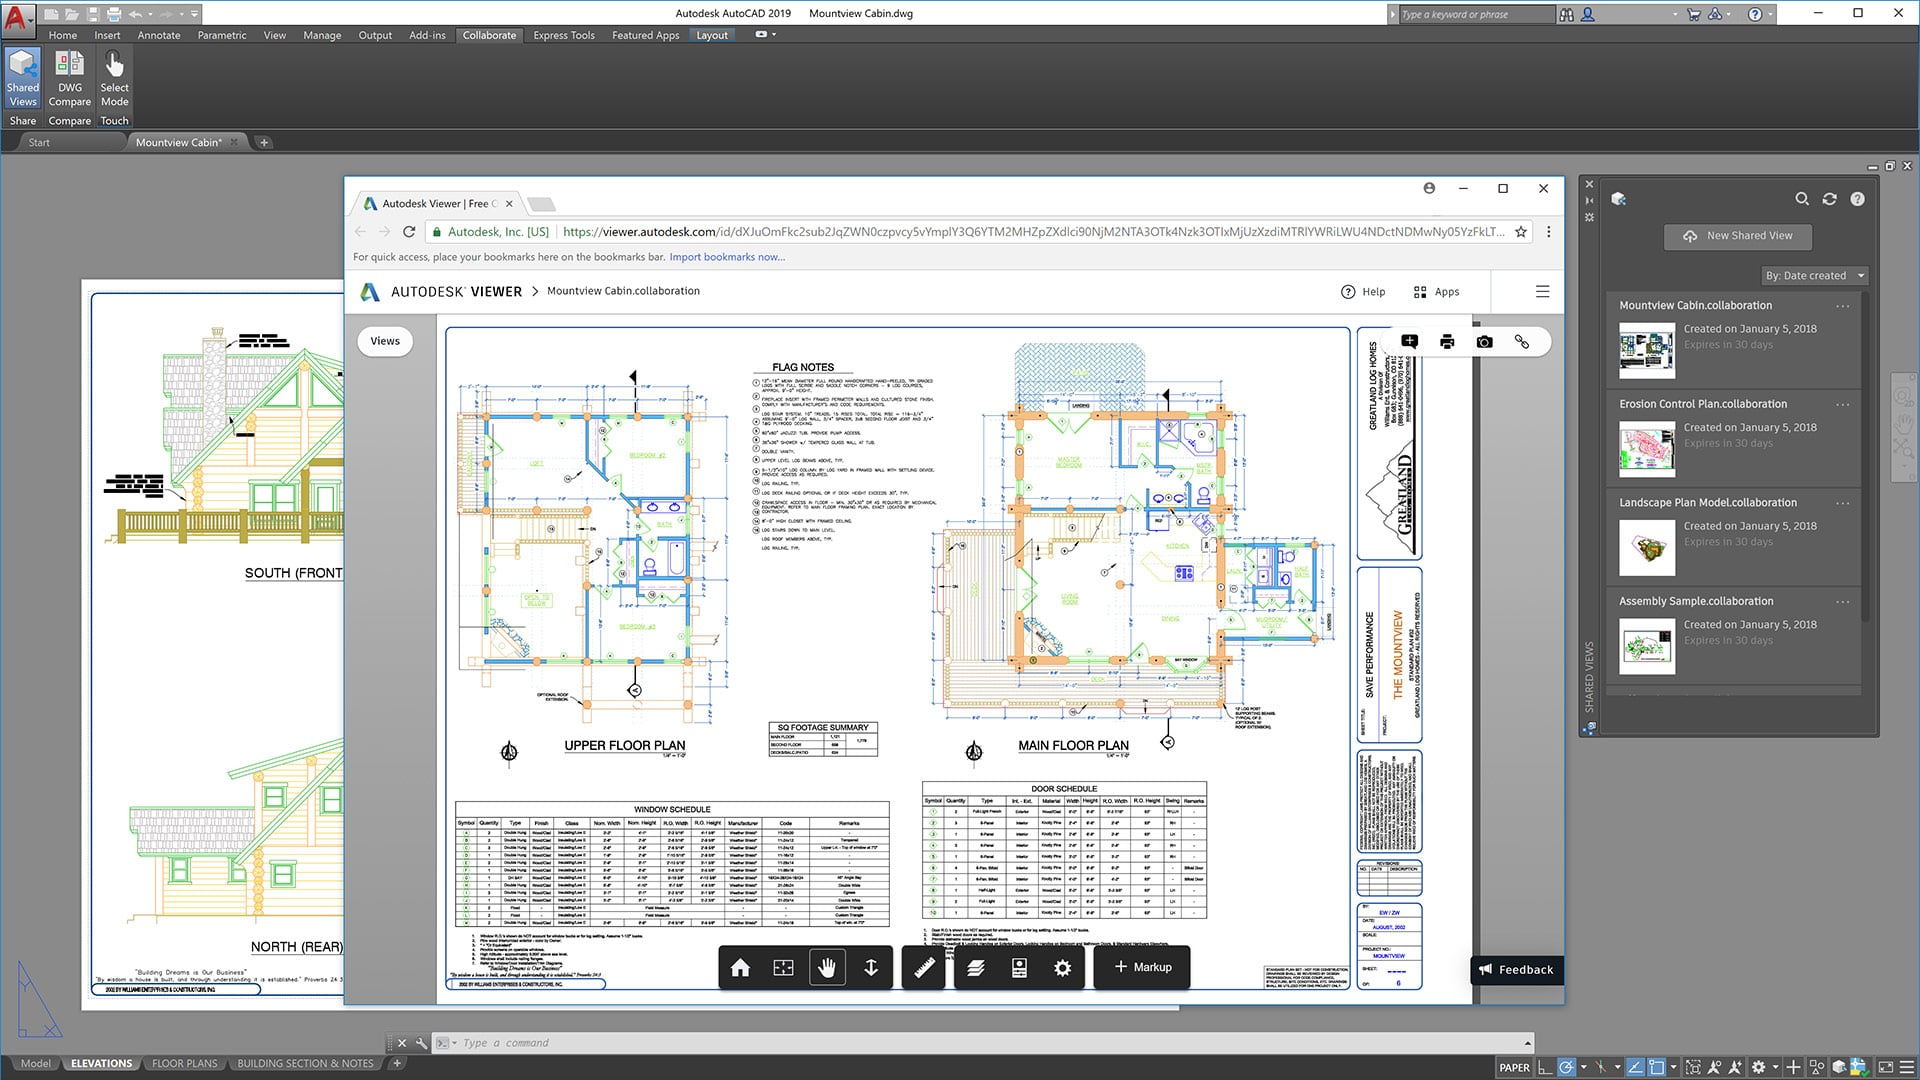 A First Look At Whats New In Autocad 2019 The Cad Geek Electrical Symbols Library Likewise Publishing Shared View From